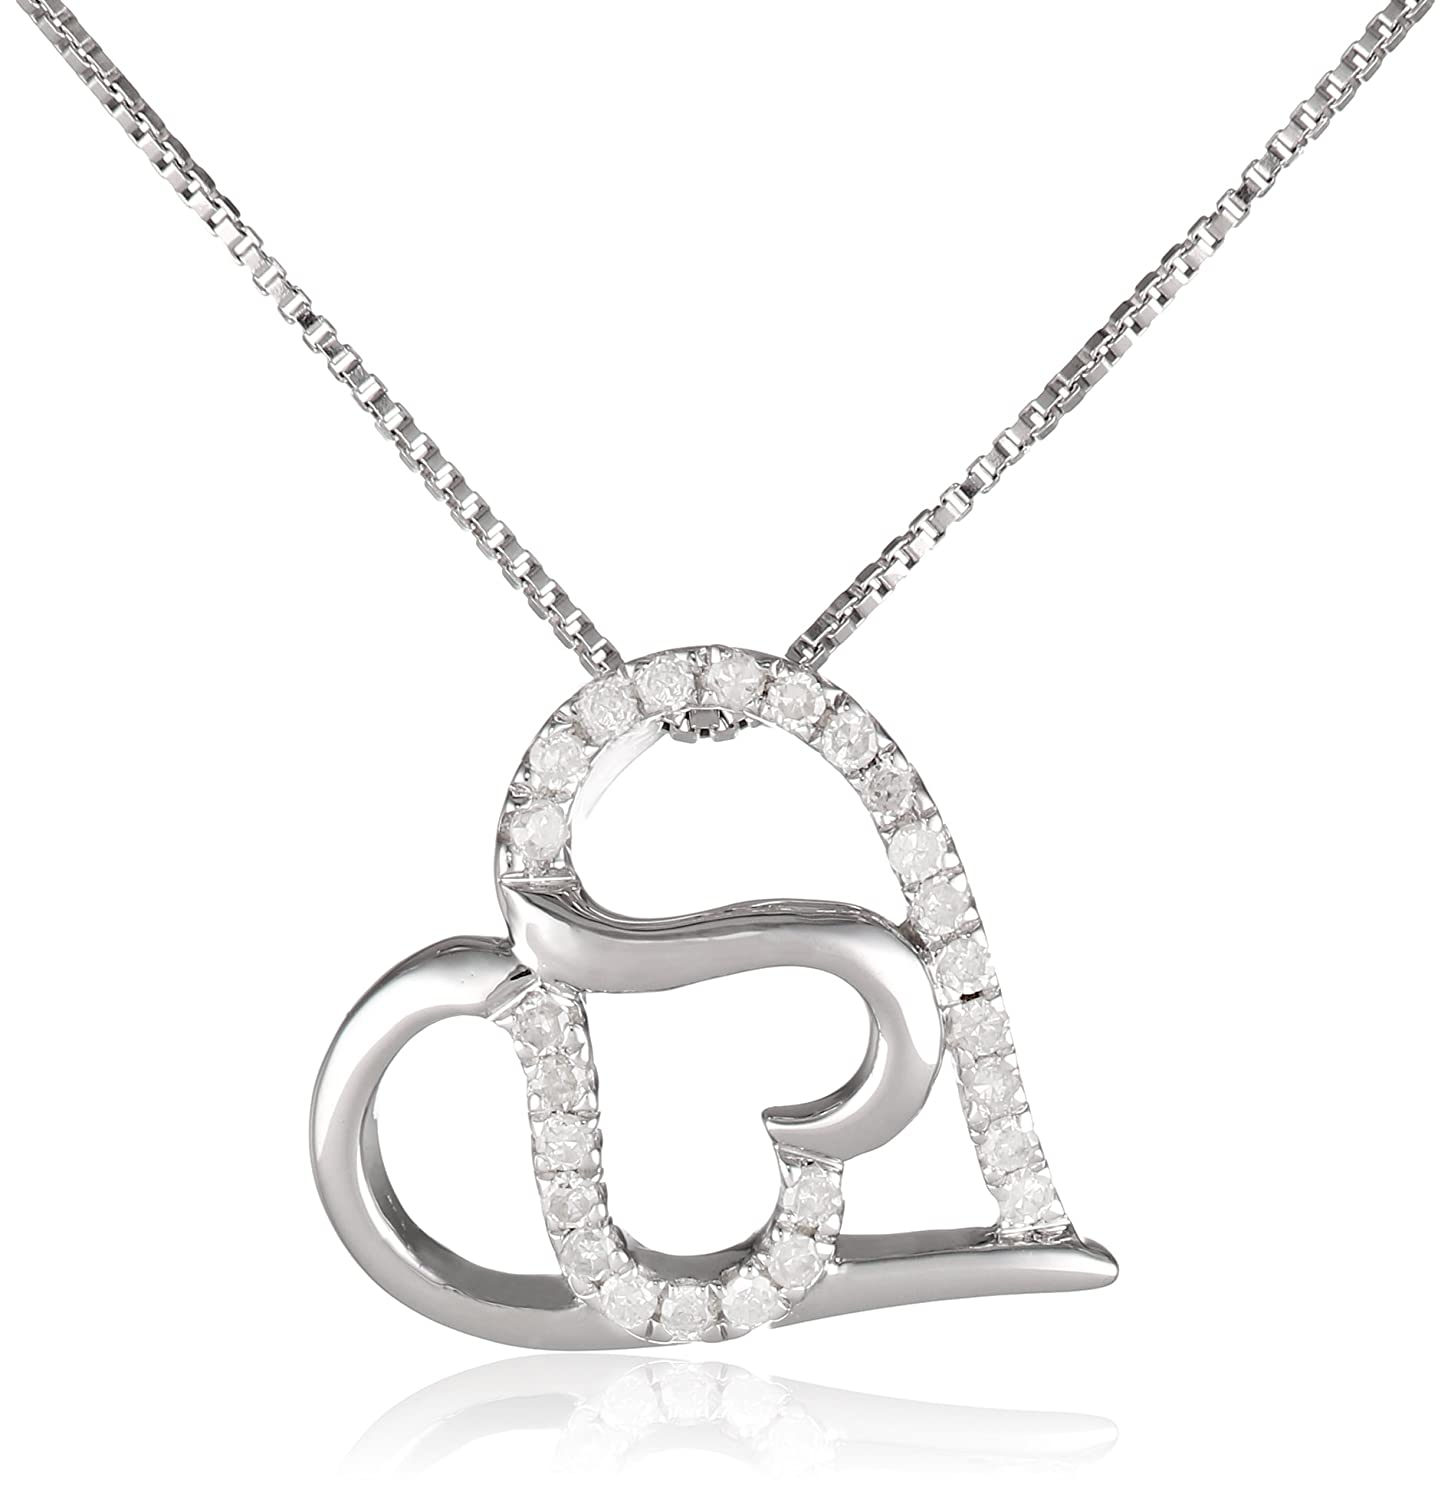 Sterling Silver and Diamond Double-Heart Pendant Necklace (1/10 cttw, H-I Color, I2-I3 Clarity)